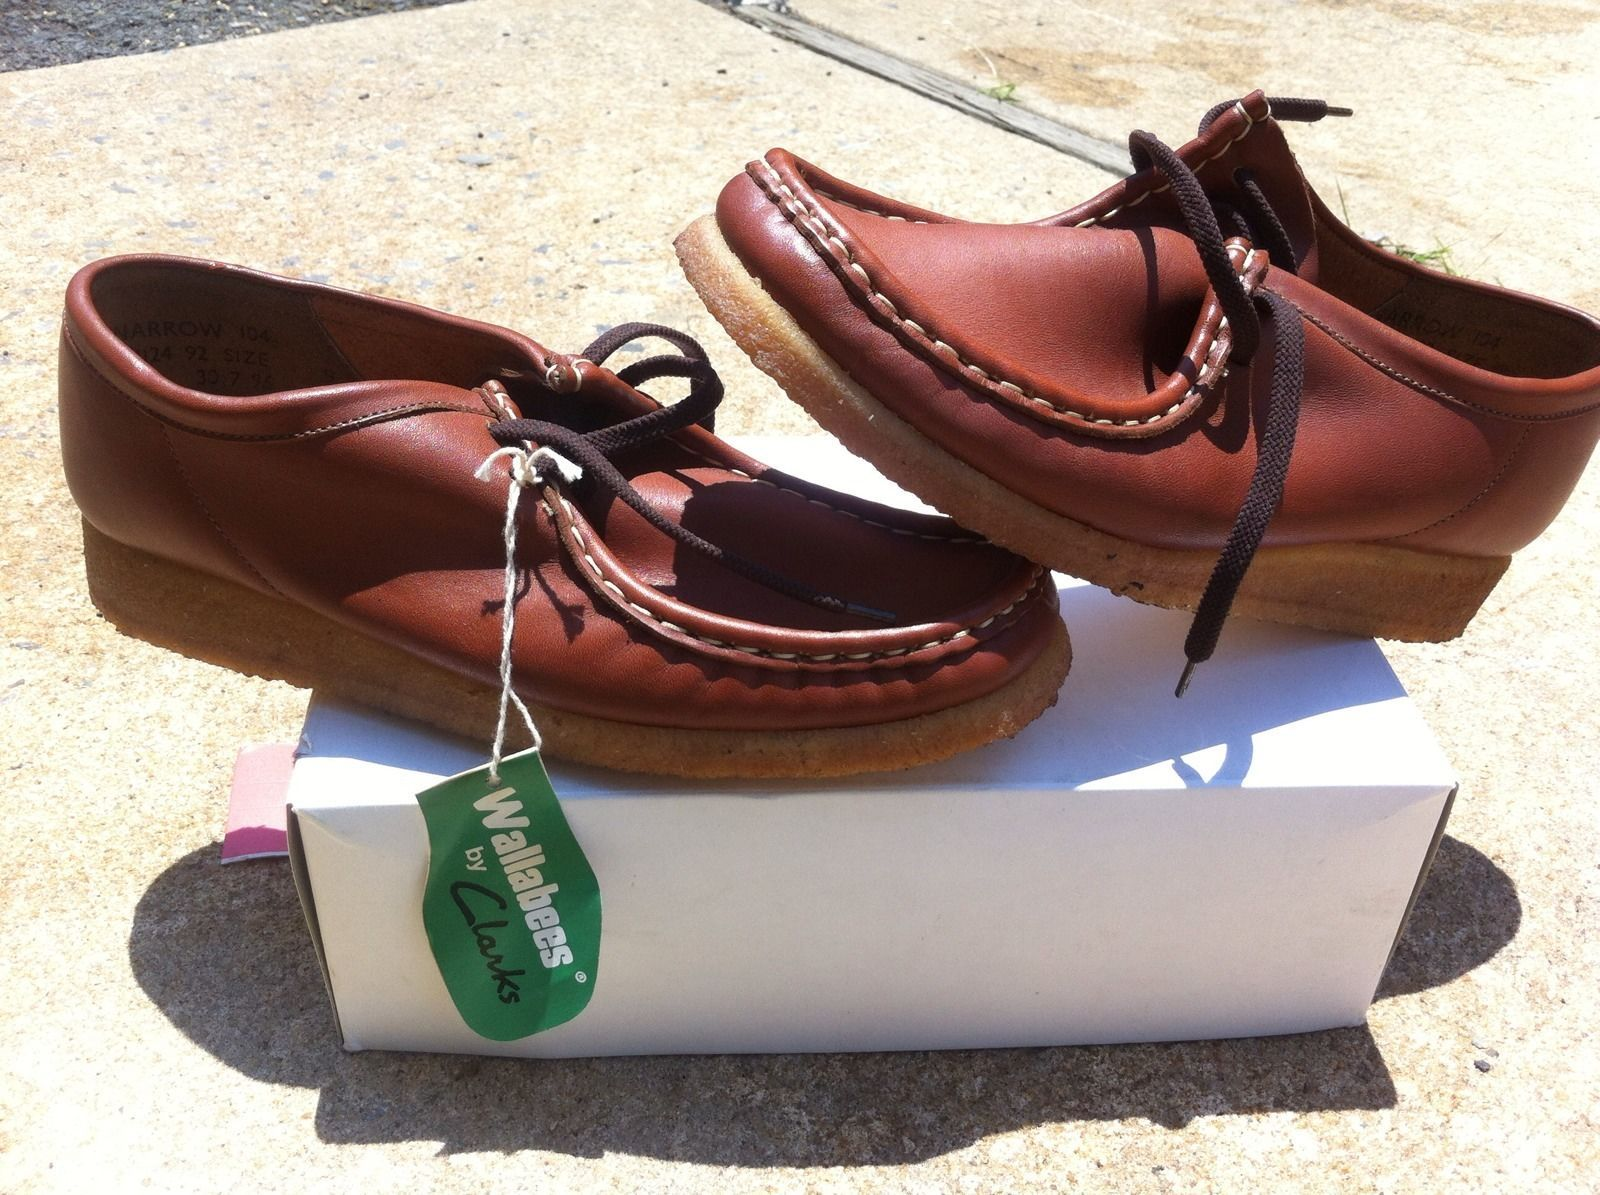 ca7b310992a Vintage Clarks Wallabees Womens Size 9 Brown Leather   Shoes ...